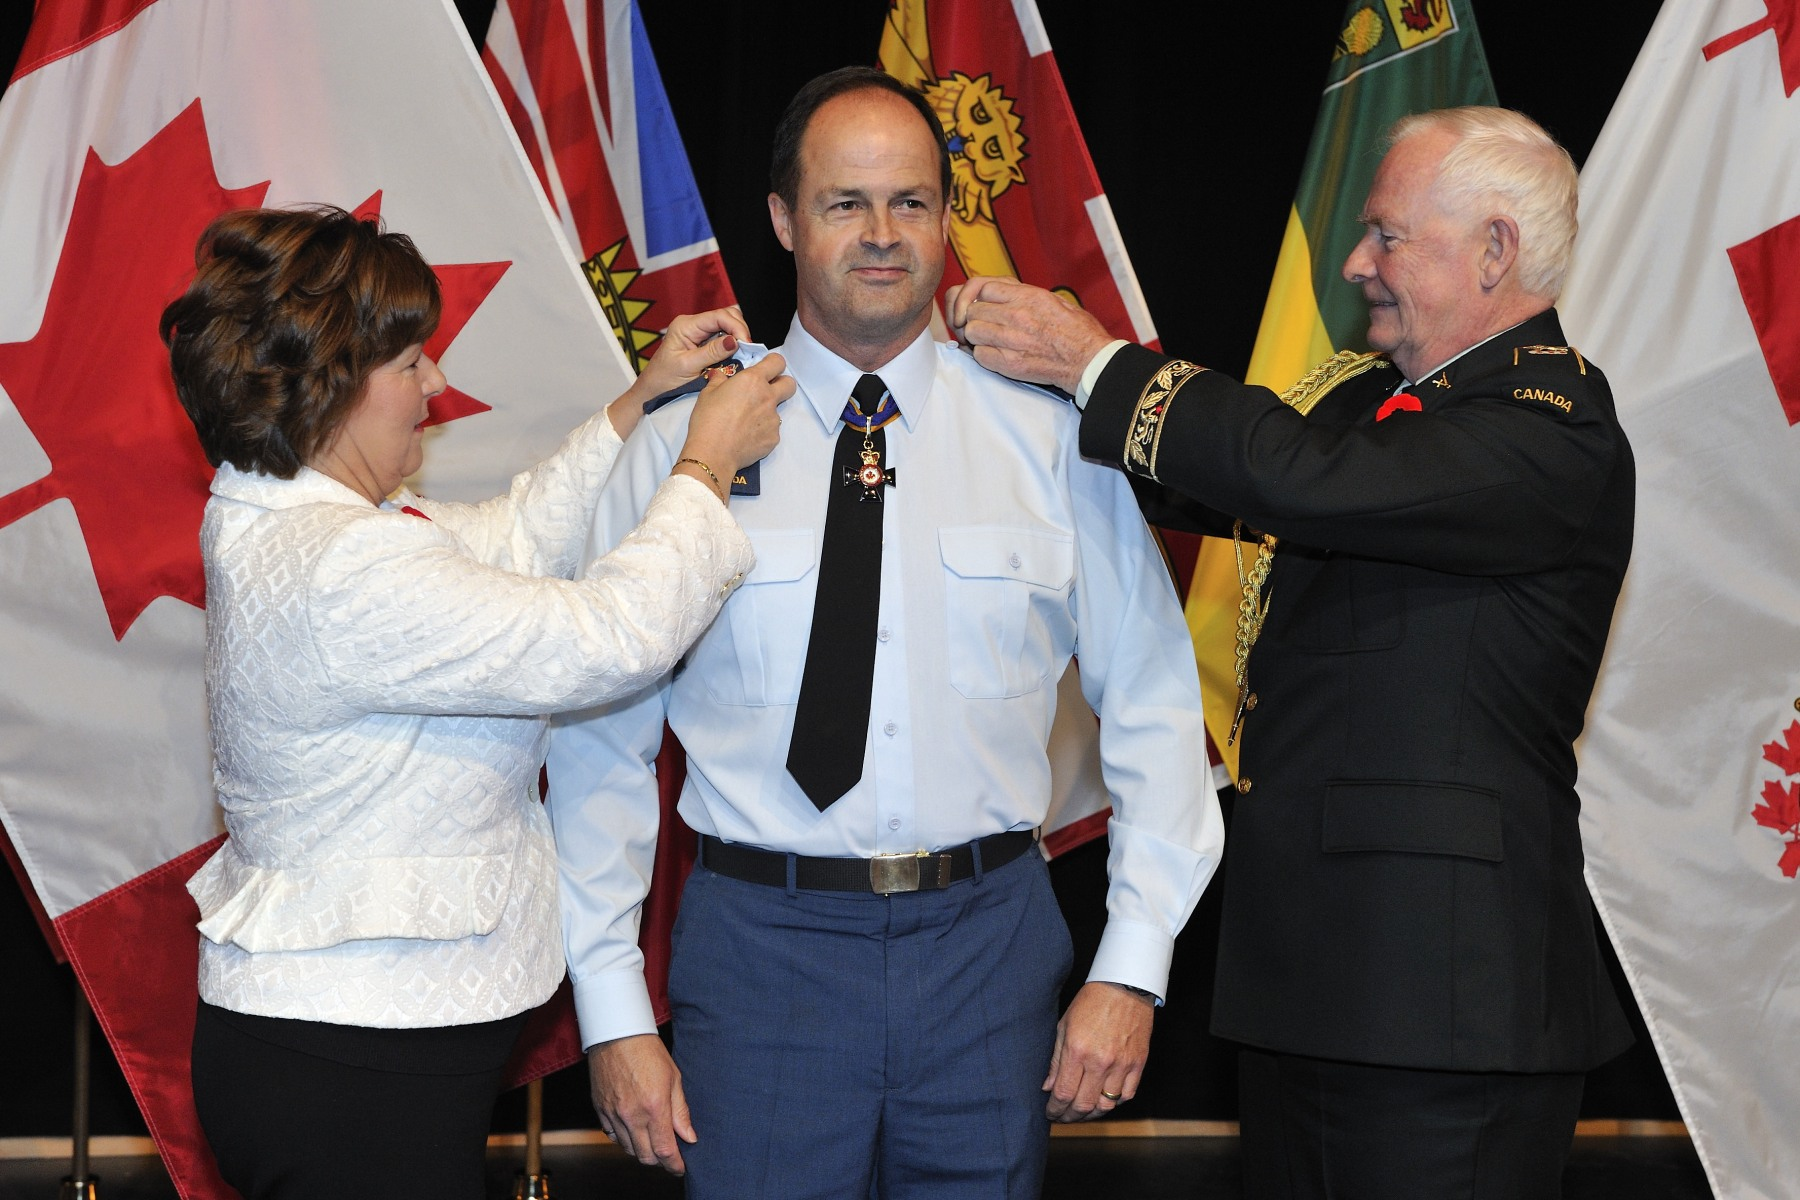 Lieutenant-General Tom Lawson was promoted to General during a private ceremony presided over by His Excellency inside the Canadian War Museum.